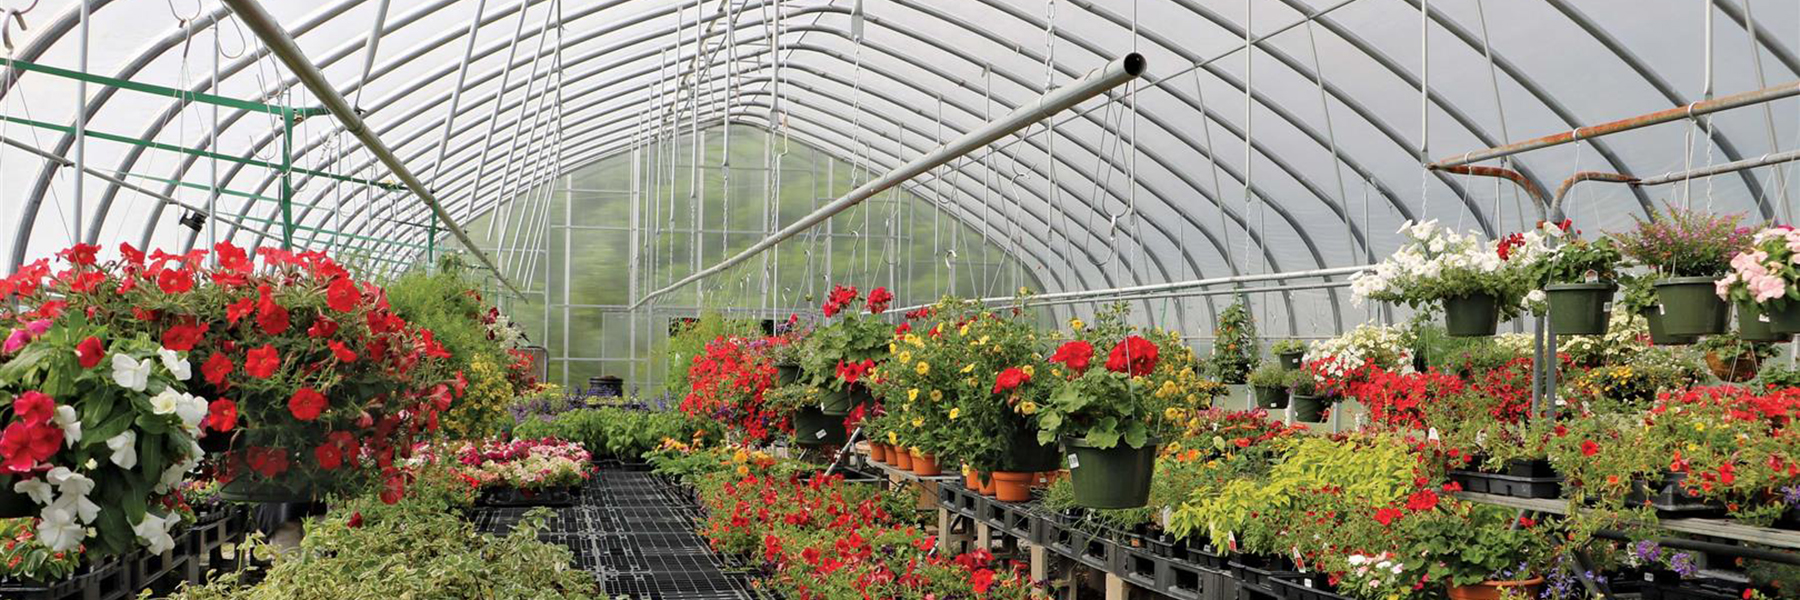 nursery greenhouse flowers